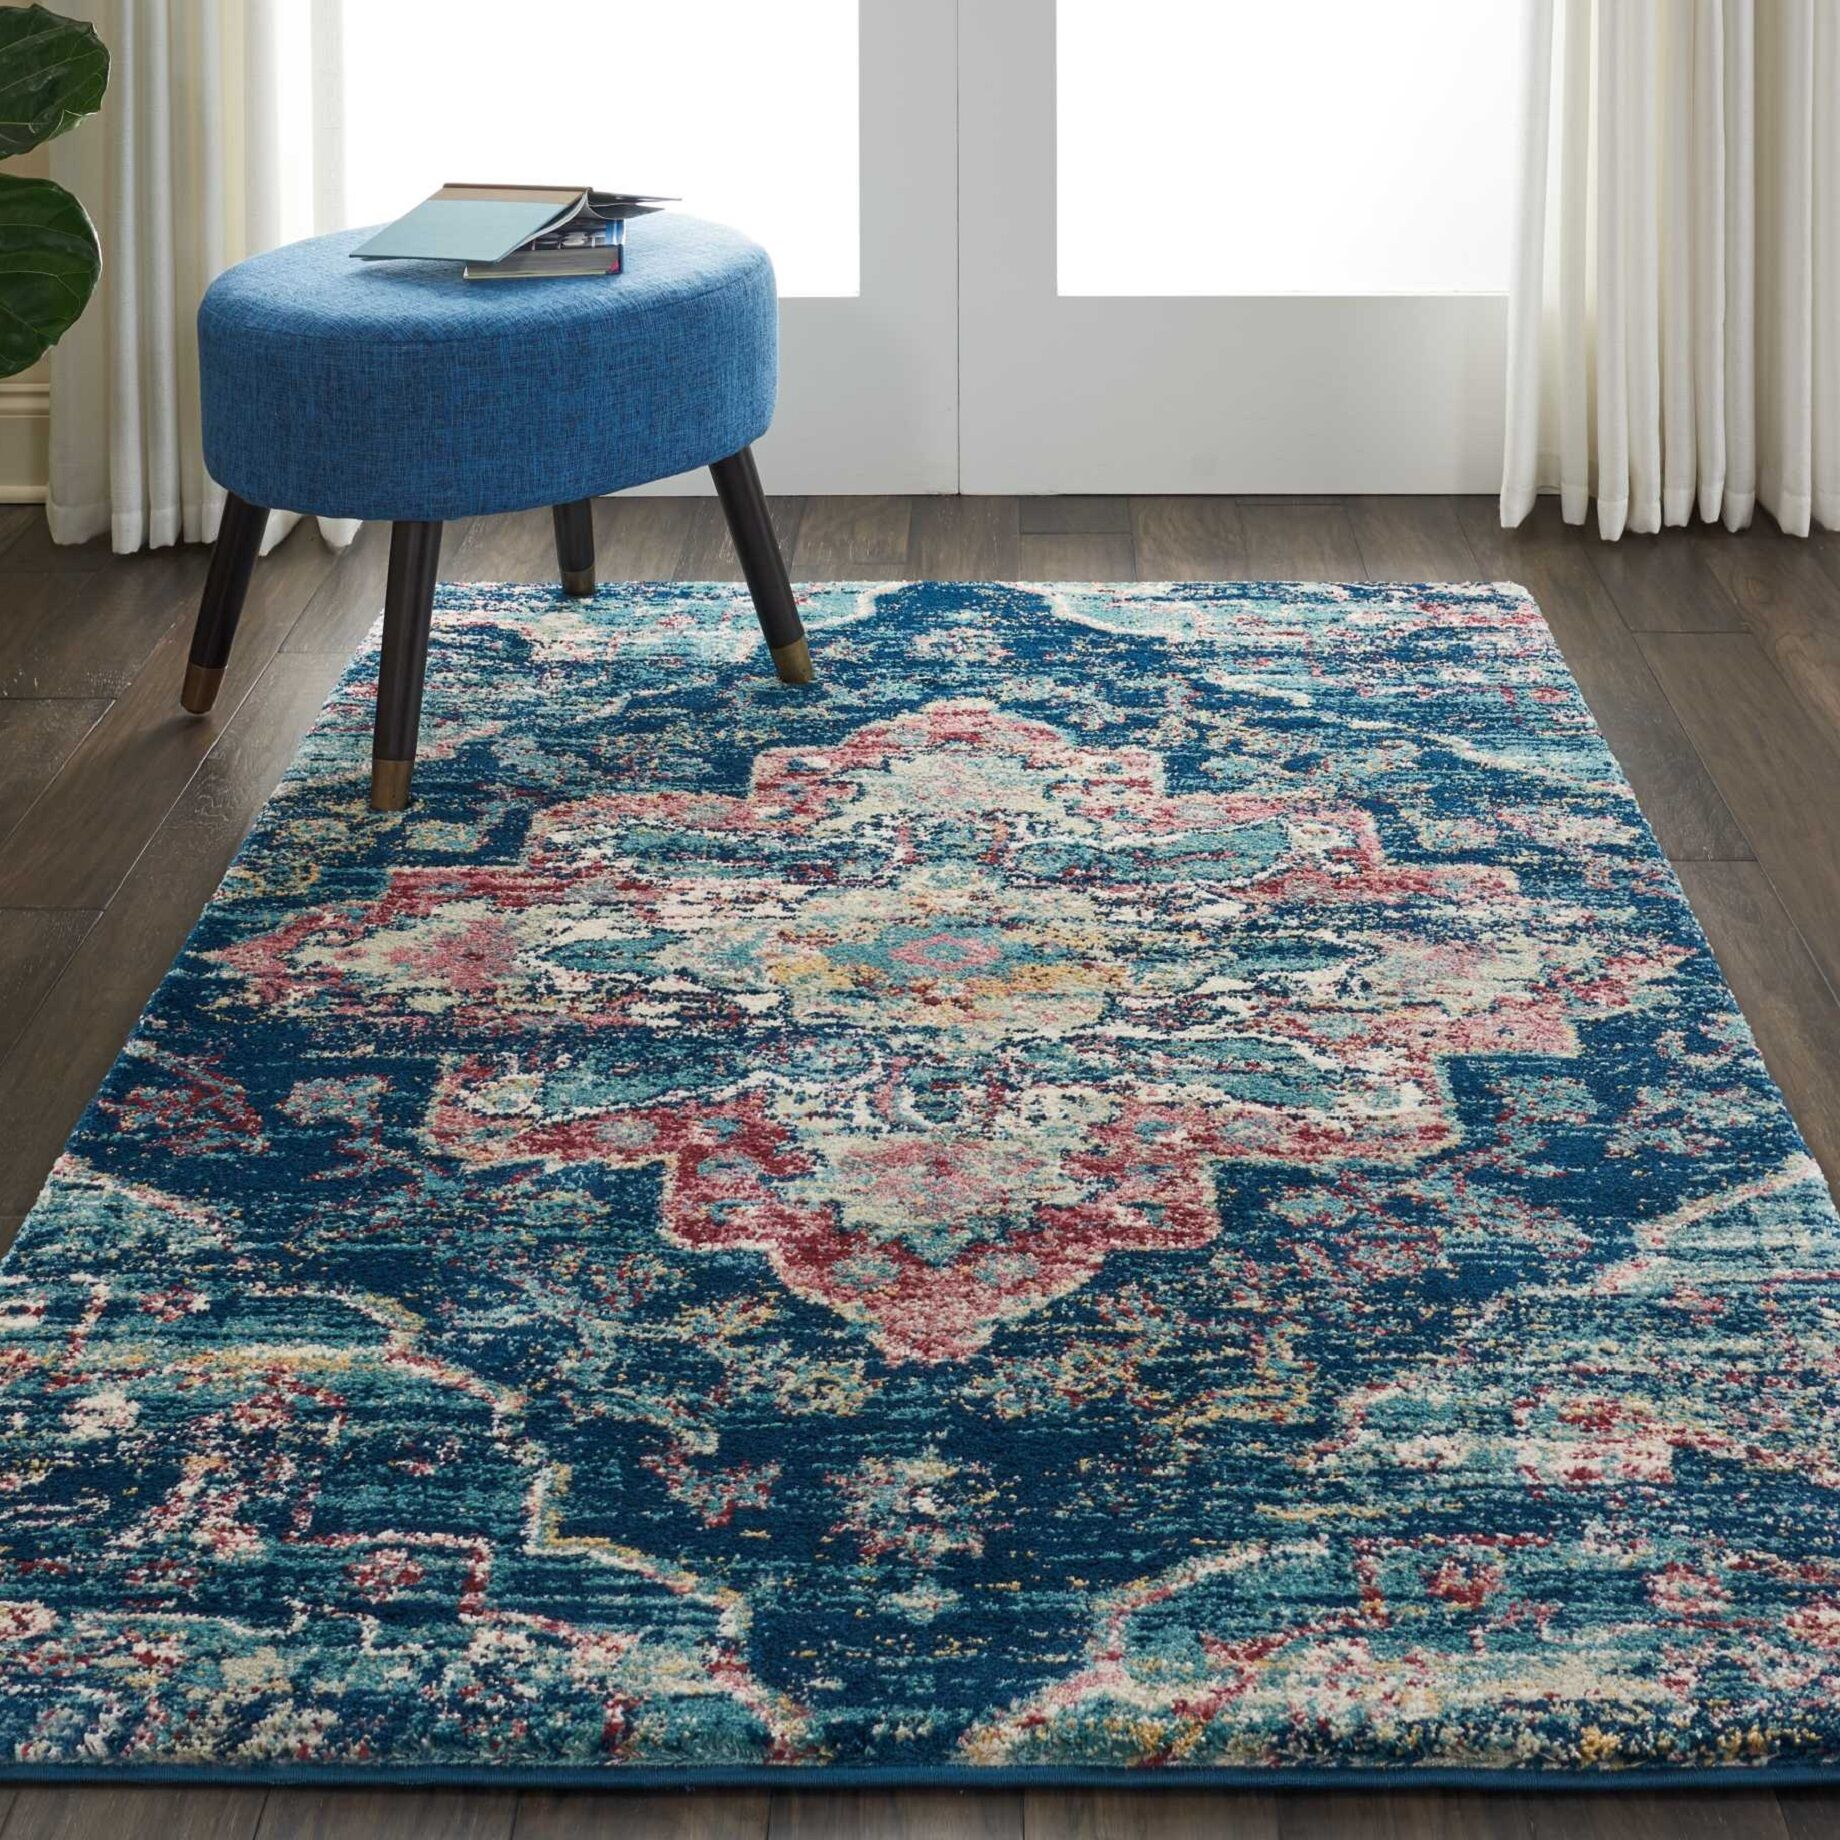 Bellock Oriental Blue/Red Area Rug Rug Size: Rectangle 4' x 6'